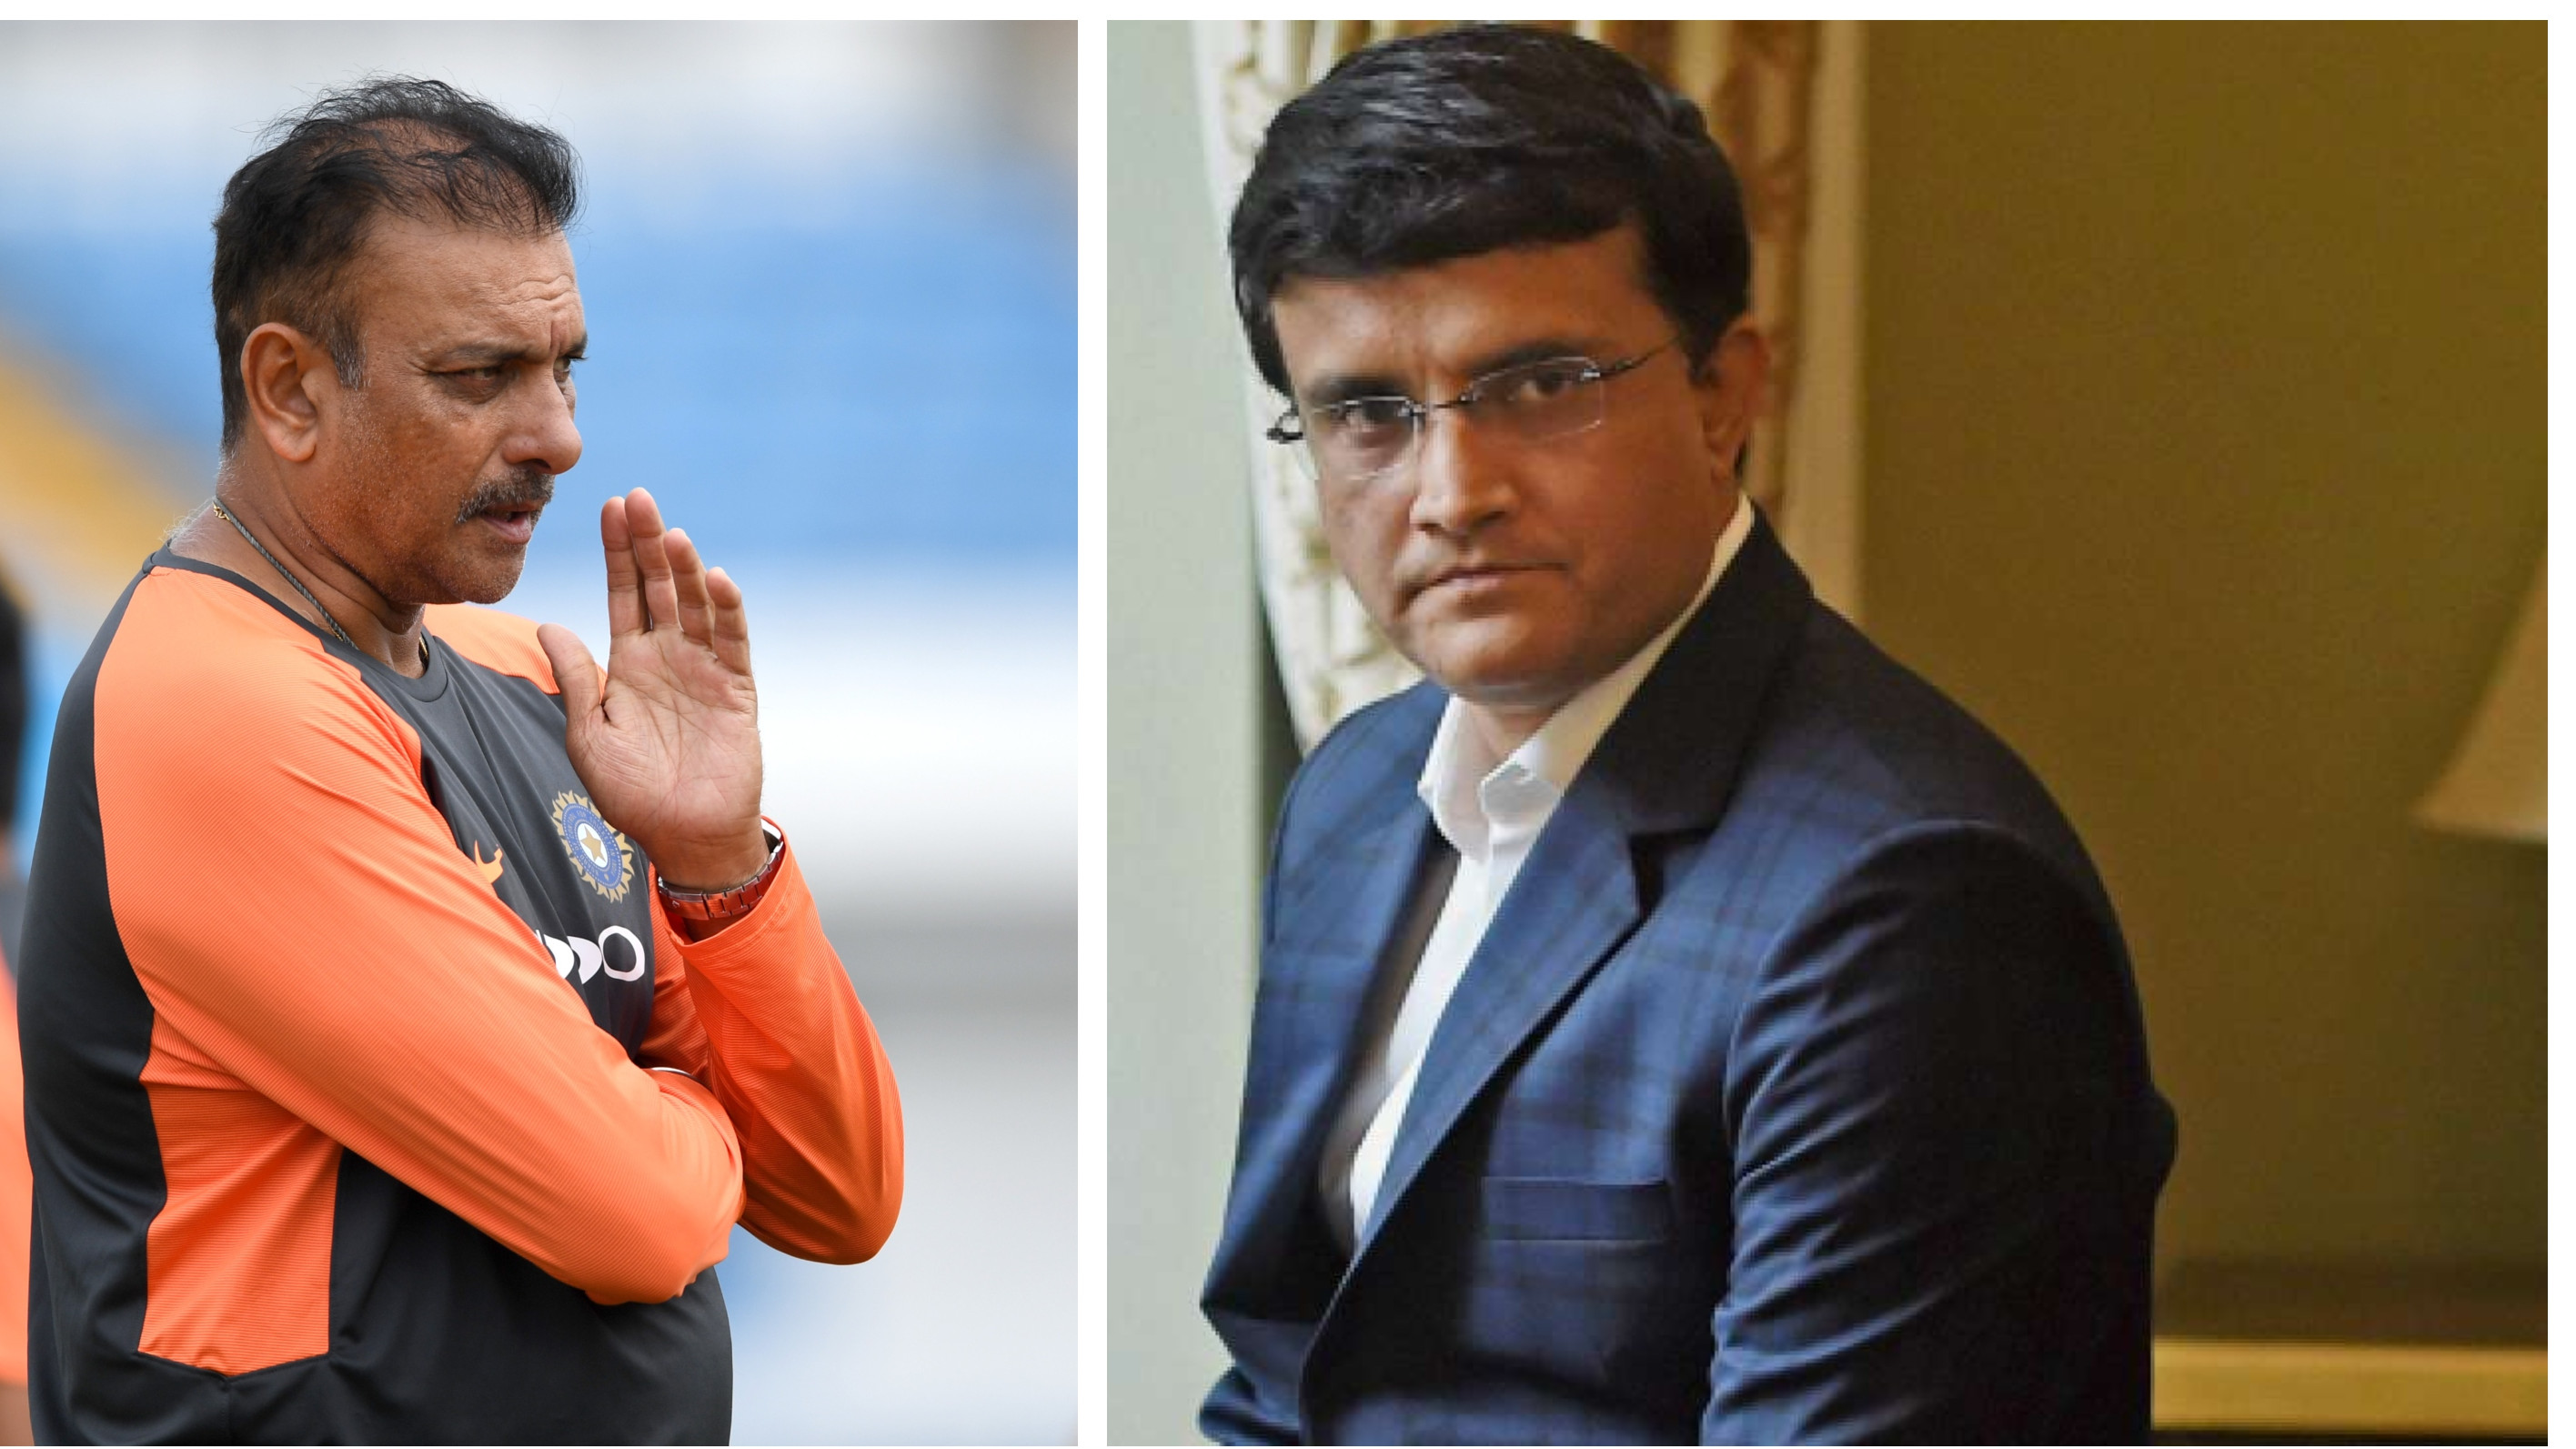 ENG vs IND 2018: Ravi Shastri should be accountable for India's series defeat, says Sourav Ganguly